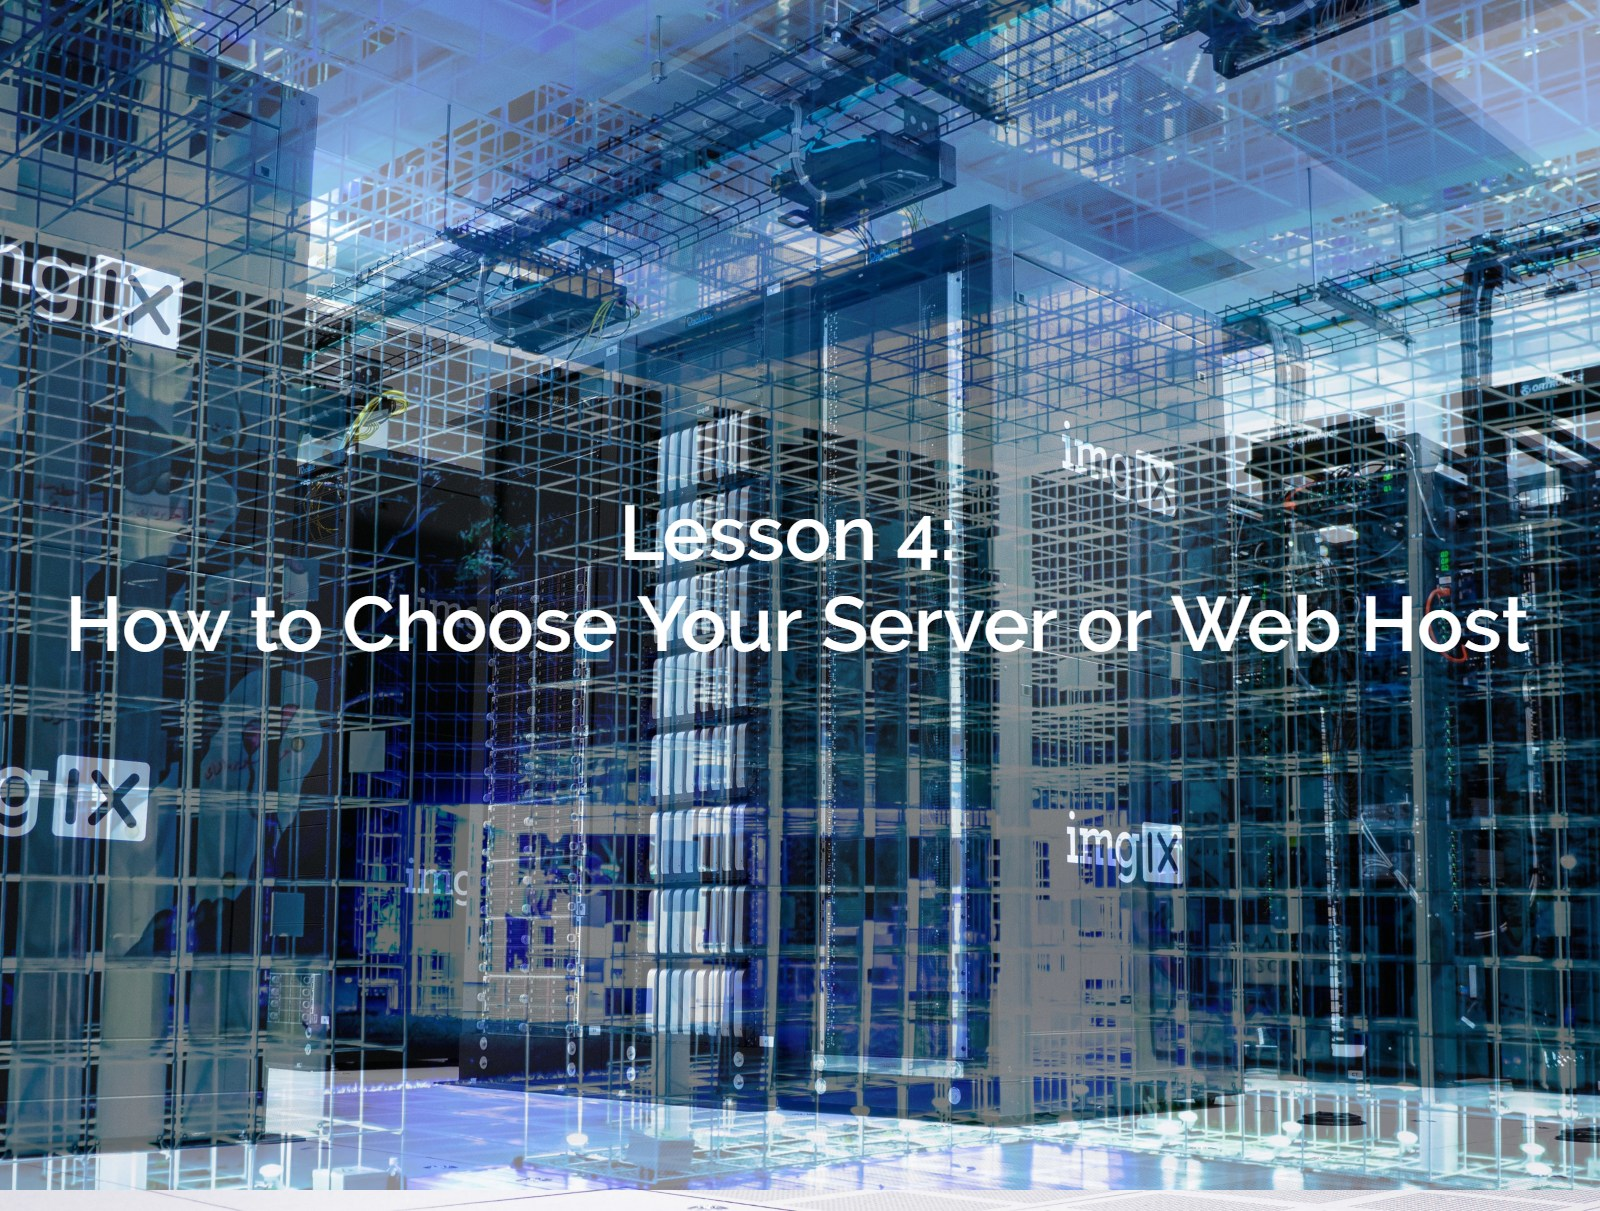 Lesson 4: How to Choose Your Server or Web Host